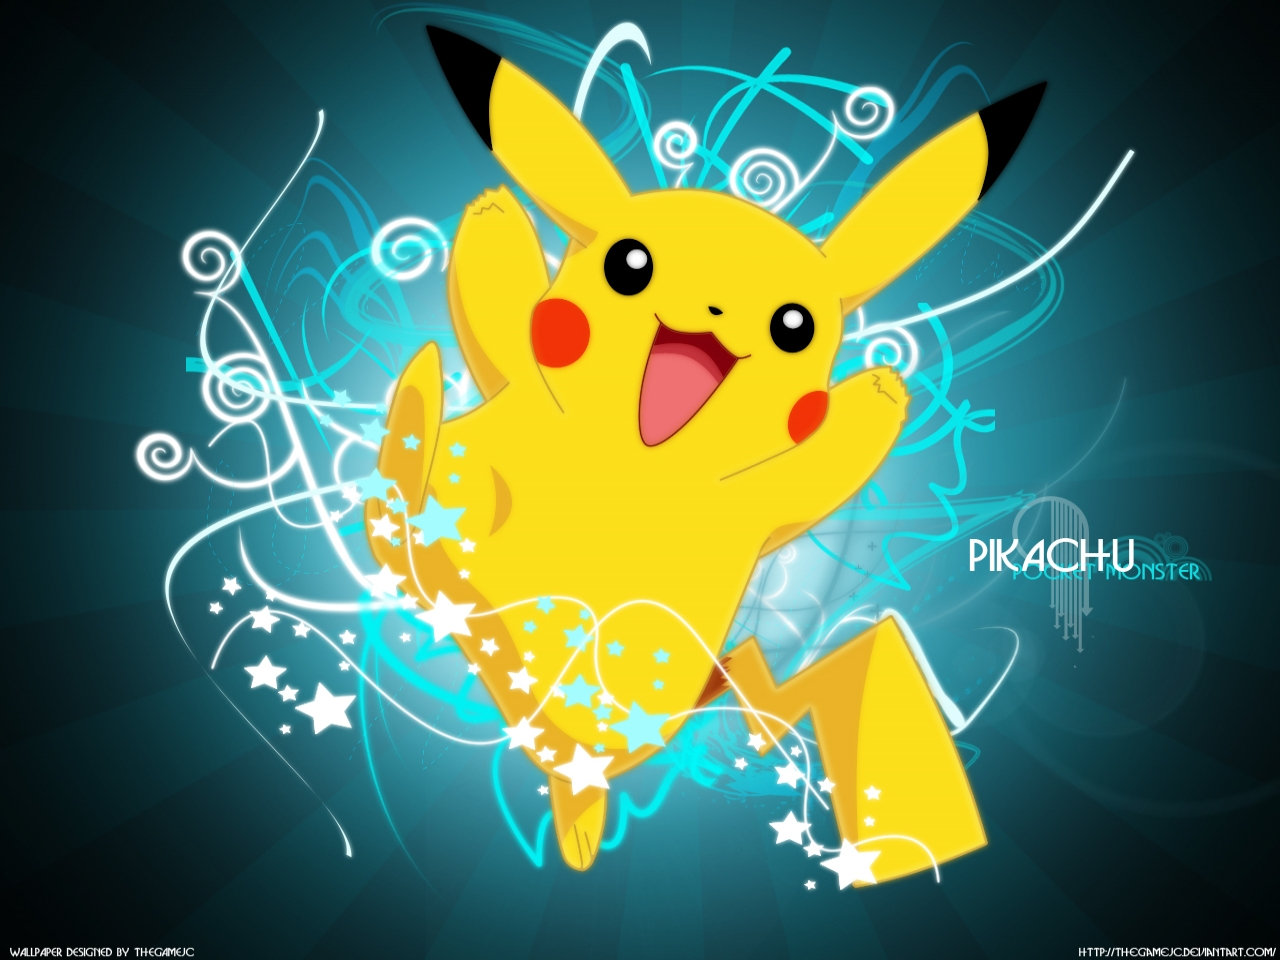 http://3.bp.blogspot.com/-N1d2GnRdaig/T6zuPJddDbI/AAAAAAAACMg/KYBhWkohyvo/s1600/amazing-pikachu-pokemon-wallpaper-for-pc.jpg